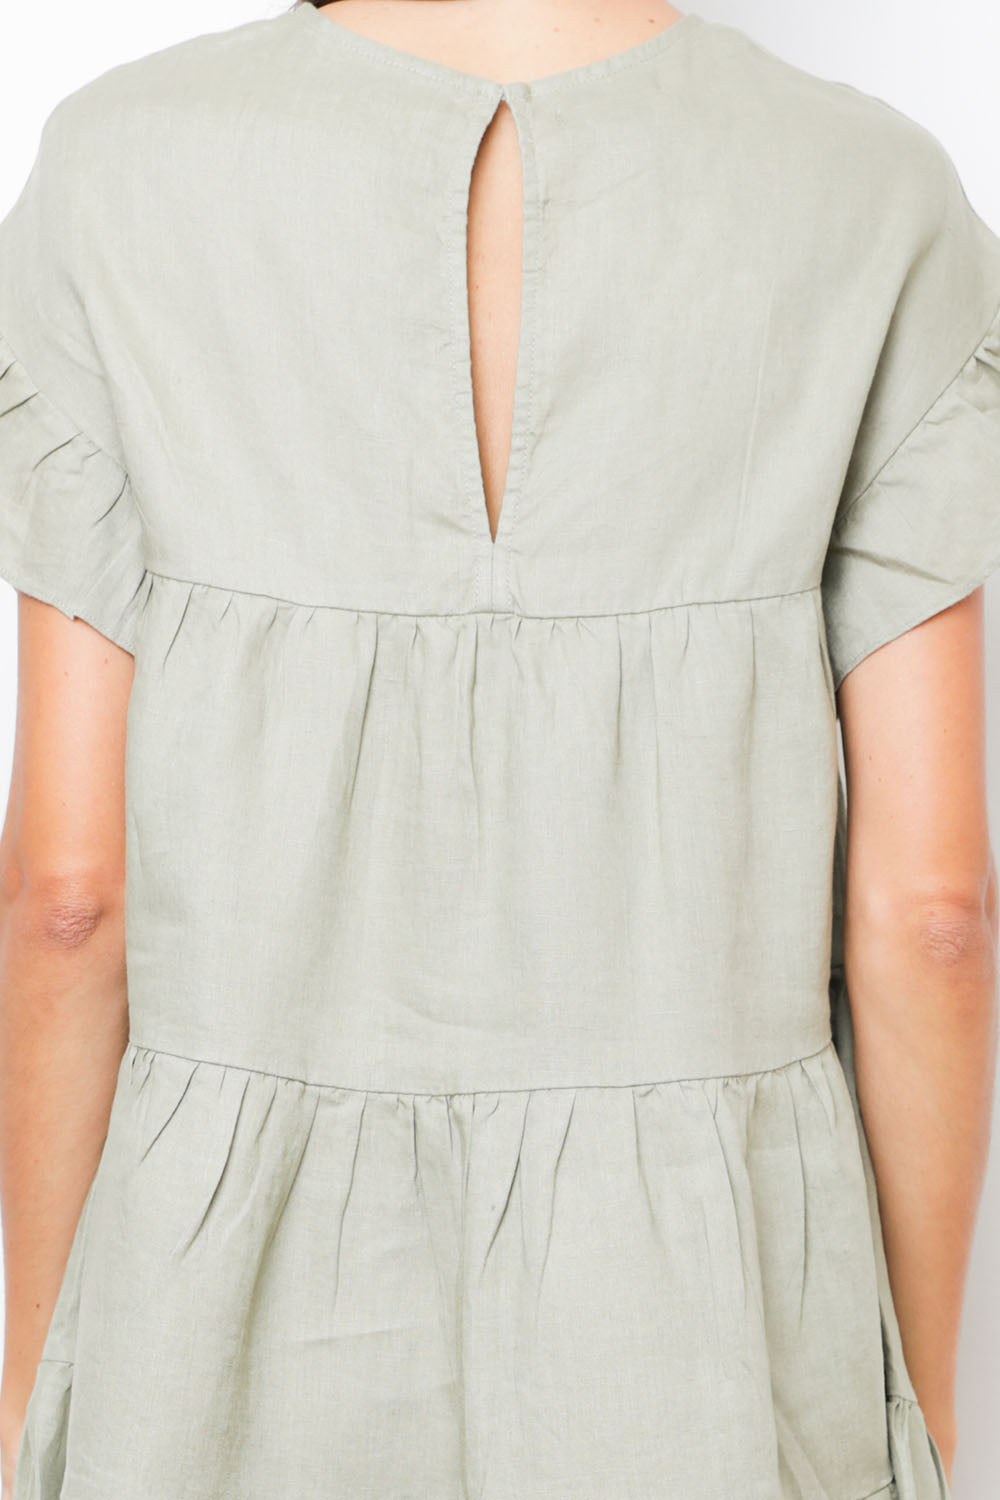 Sun Dress in Khaki Linen back detail